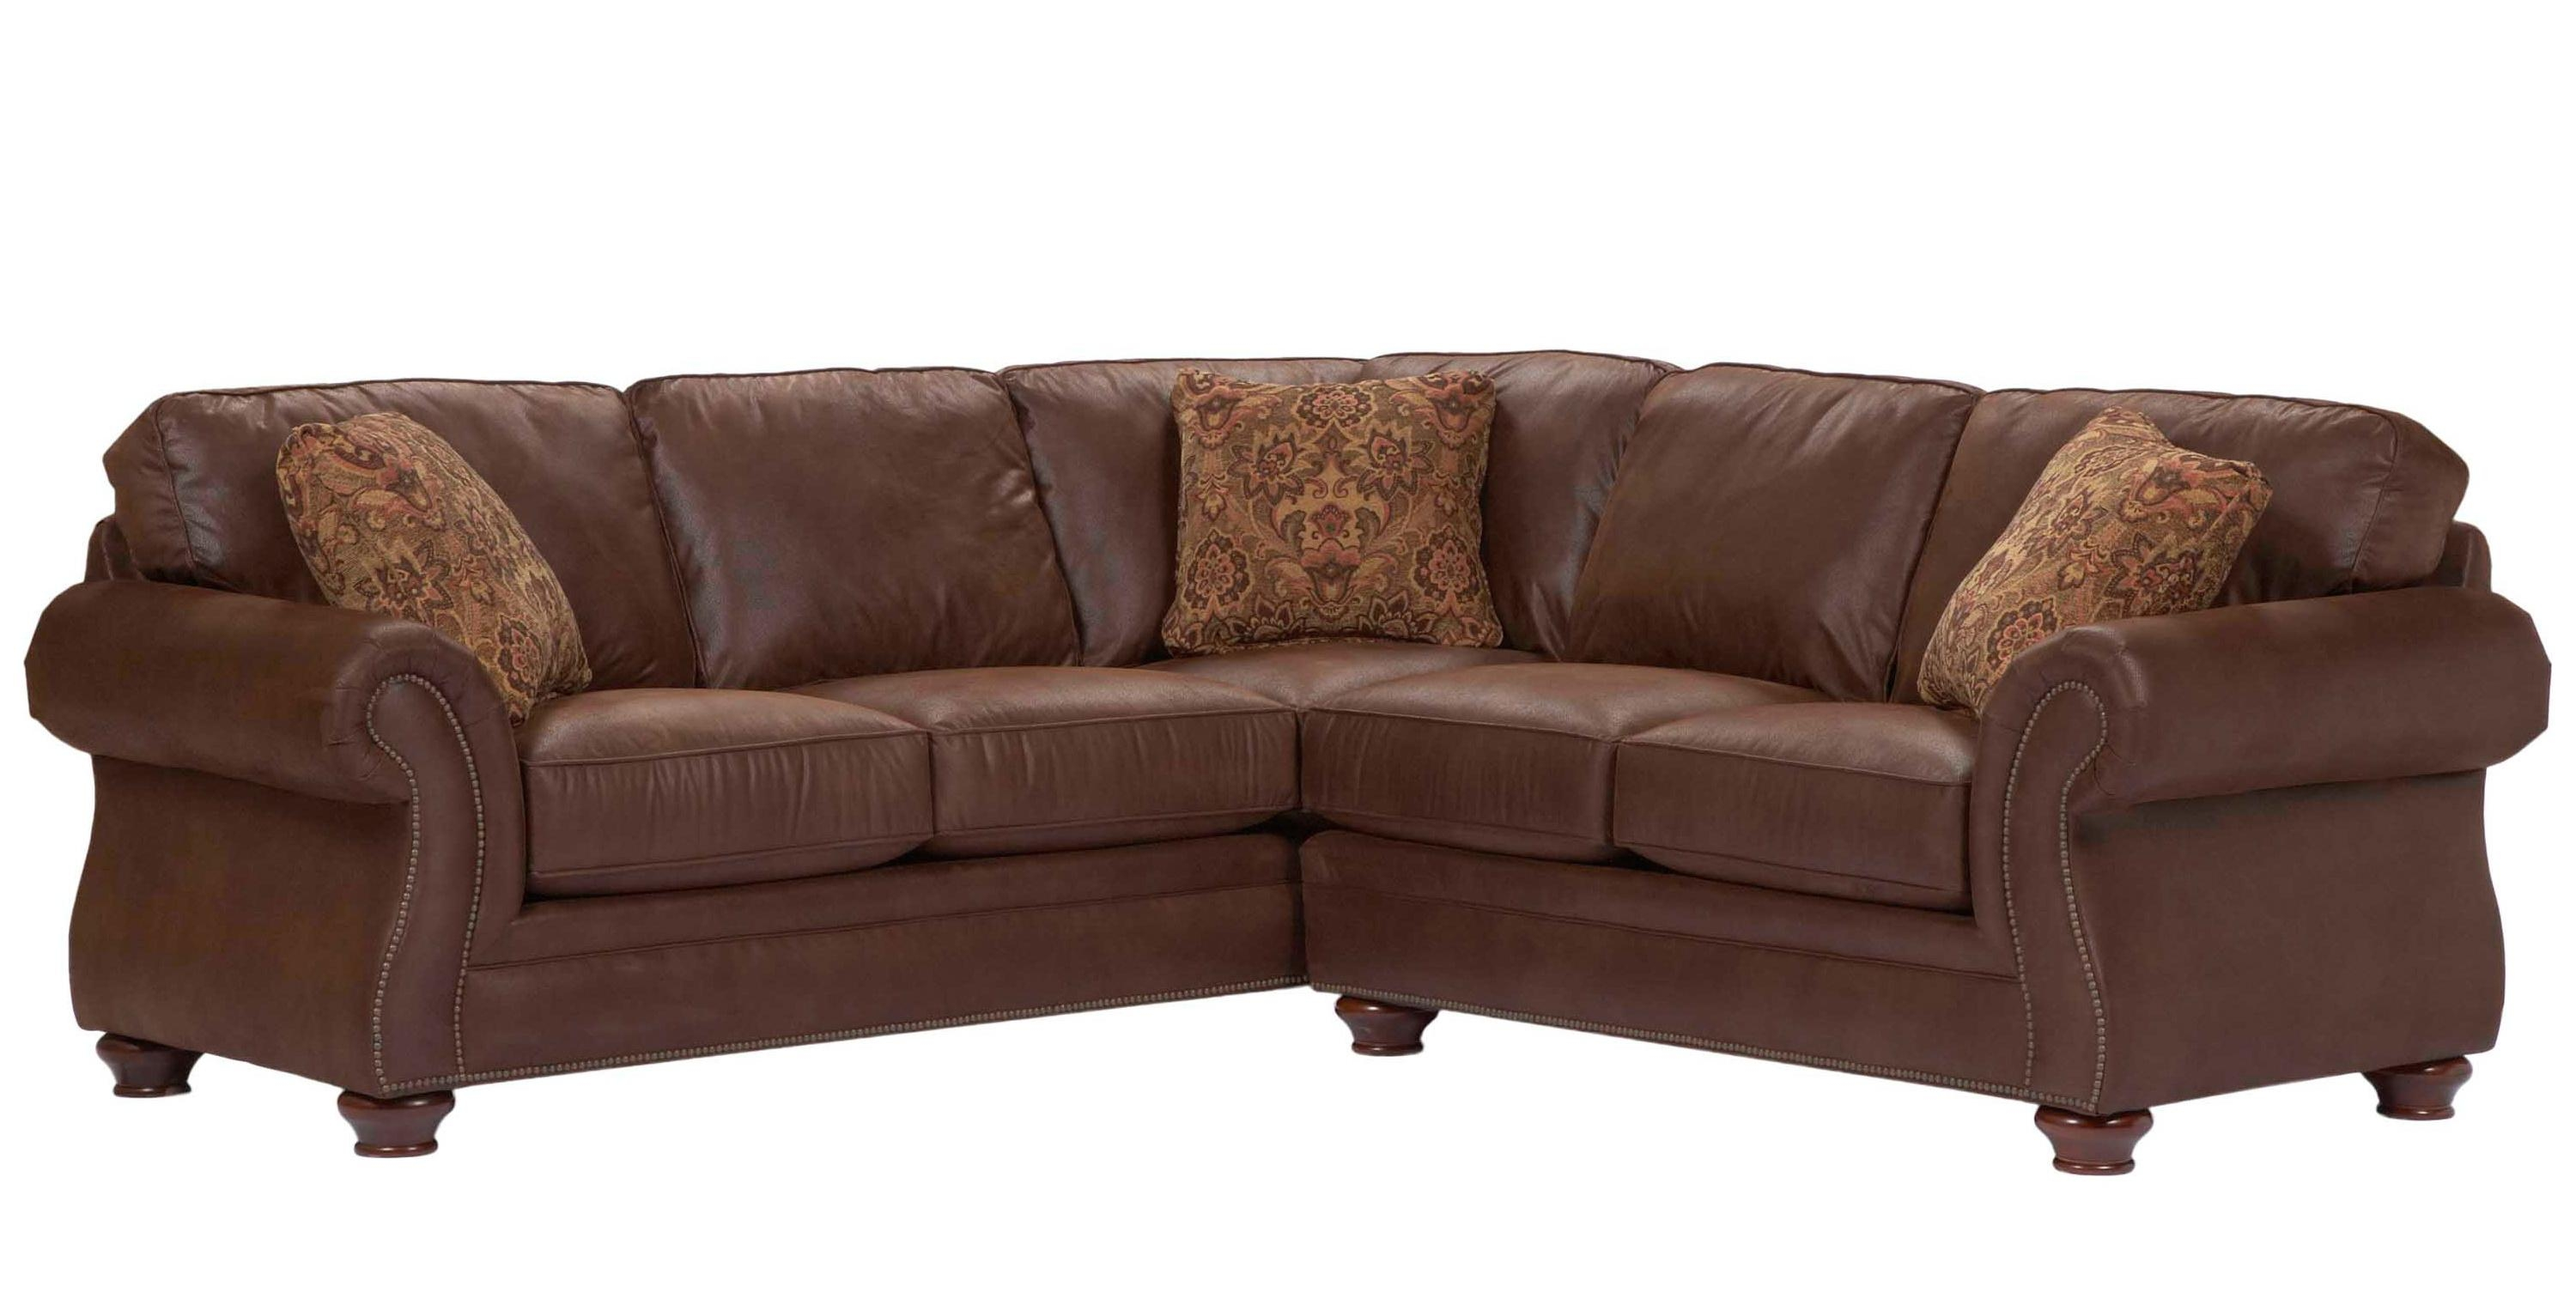 Broyhill Laramie Sectional 5080 1Q/5080 4Q With Regard To Broyhill Sectional Sofas (Image 9 of 15)